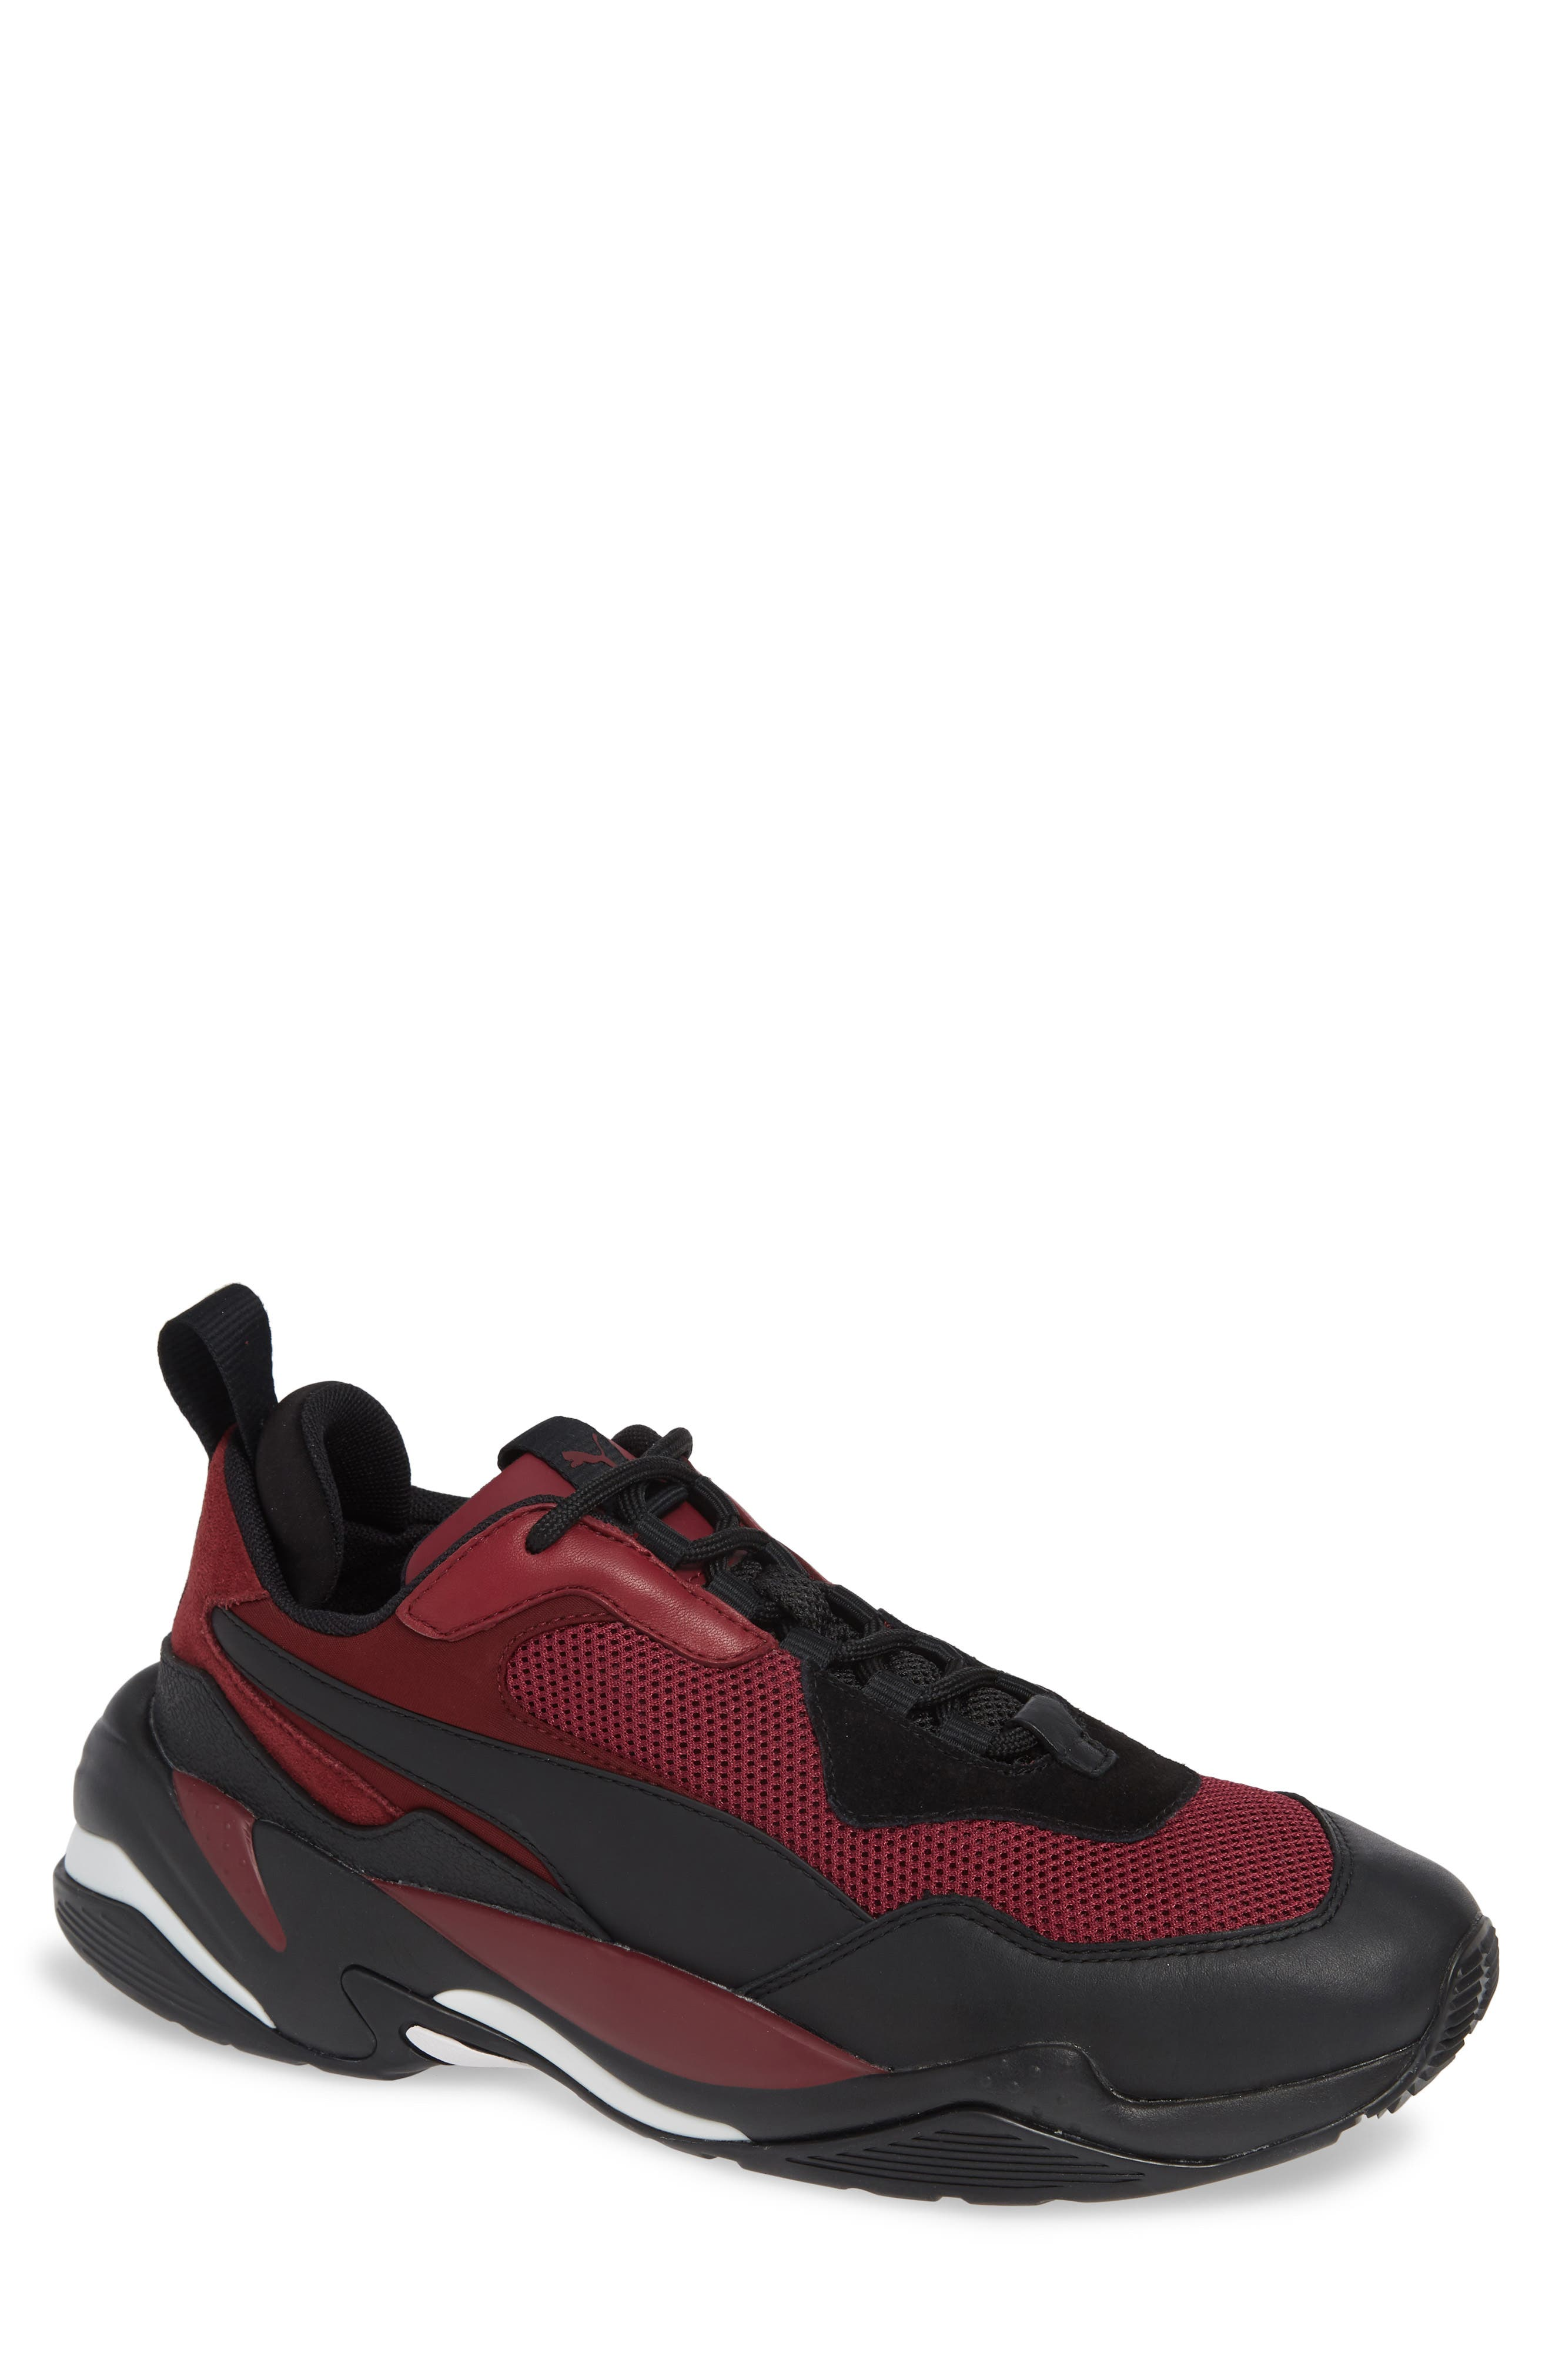 Thunder Spectra Sneaker,                         Main,                         color, RHODODENDRON/ BLACK